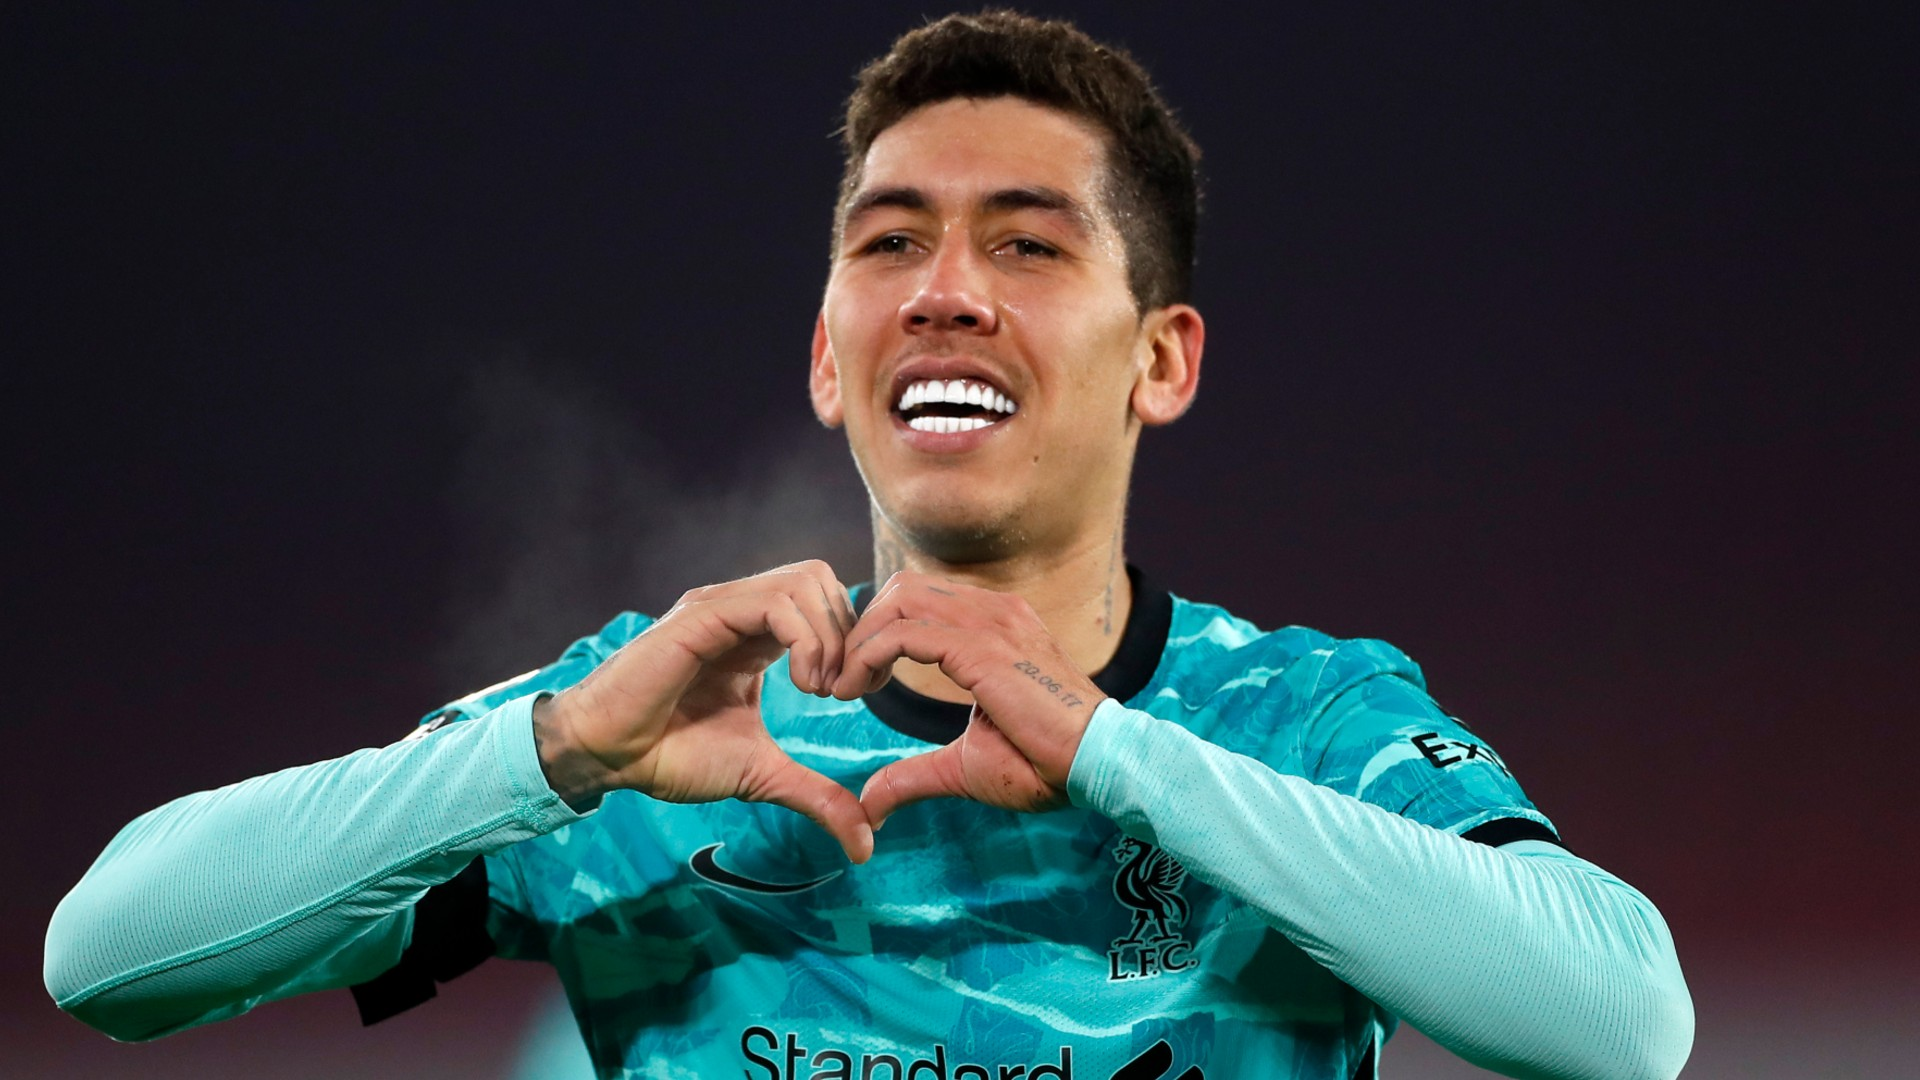 Firmino has returned to training with Liverpool after suffering a knee injury